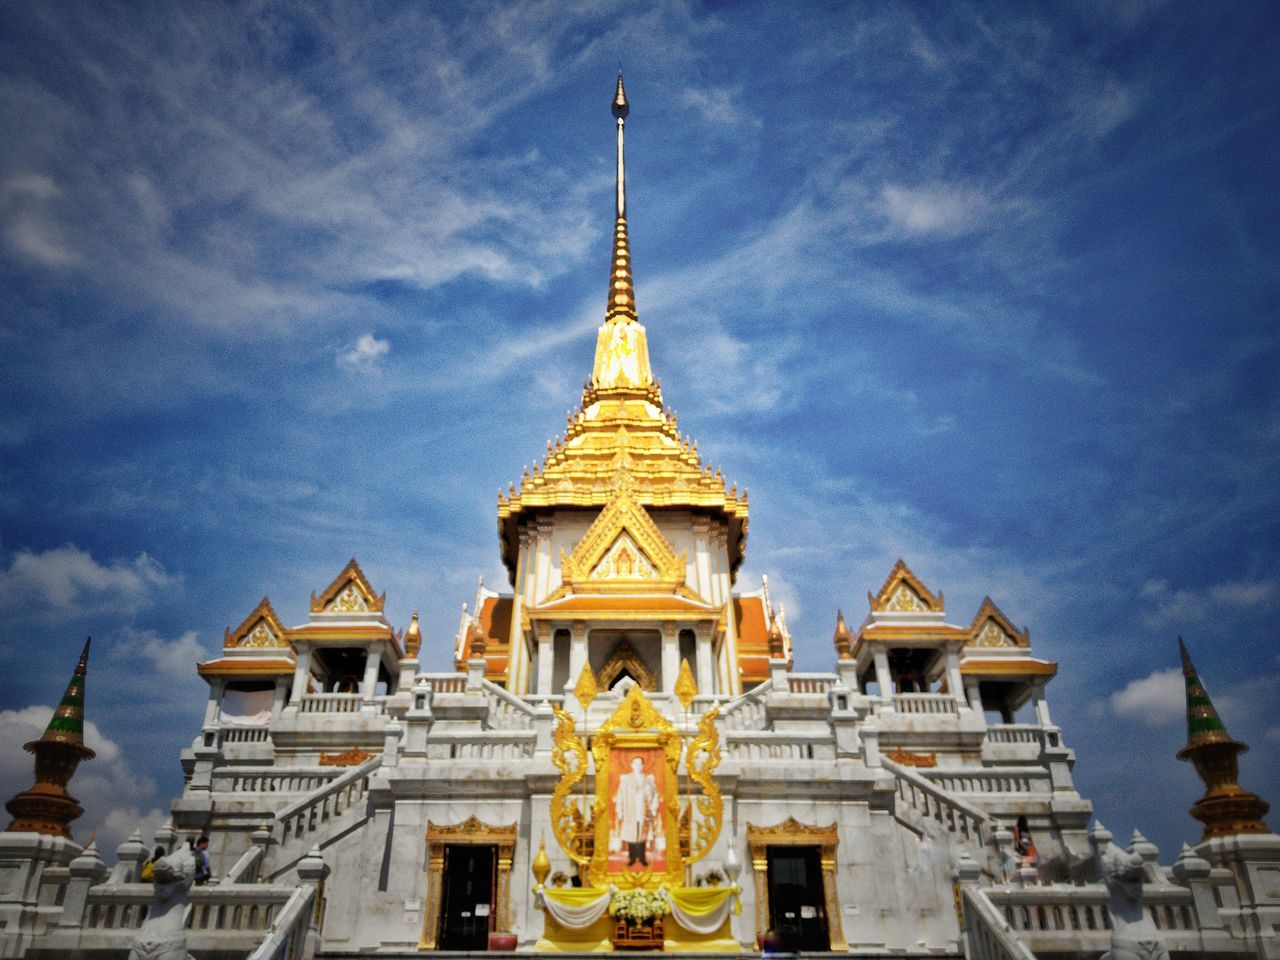 Thai Architecture Temple Travel Destinations Outdoors EyeEmNewHere Spirituality Inspirations Happy Time Weekend Activities